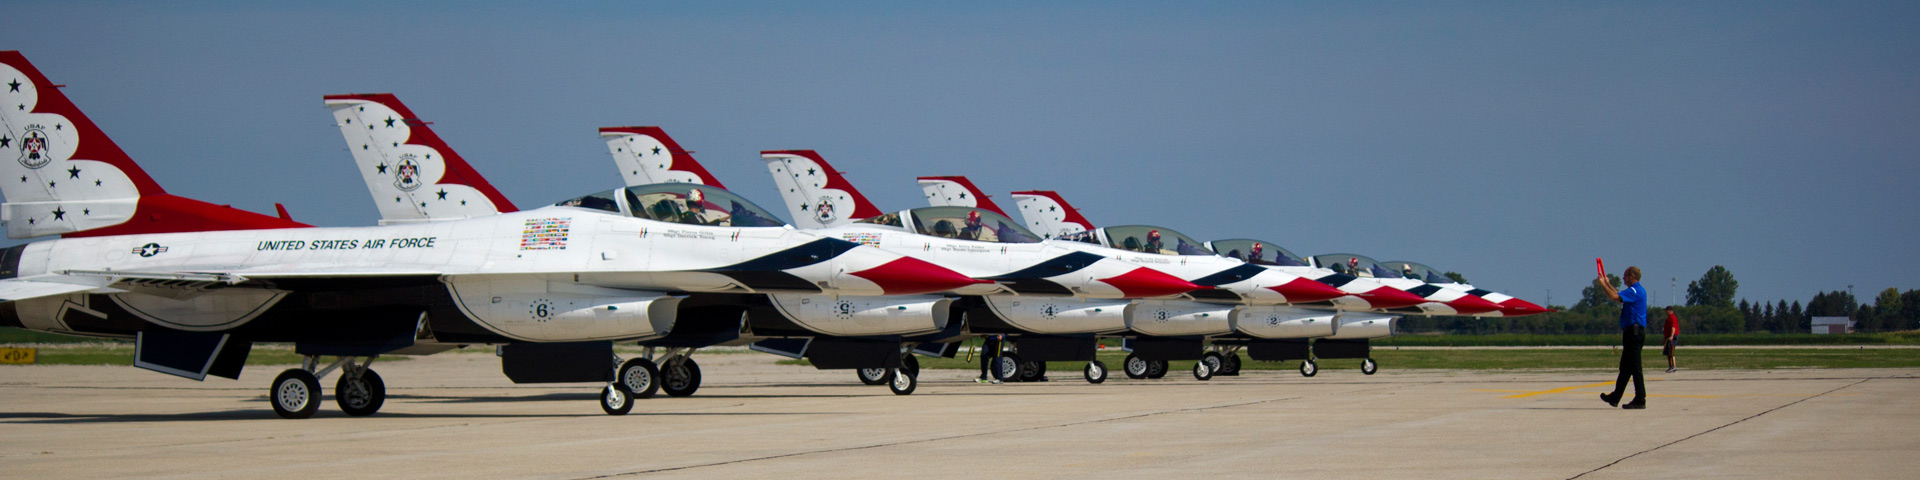 Thunder Birds Flight Team at Flightstar